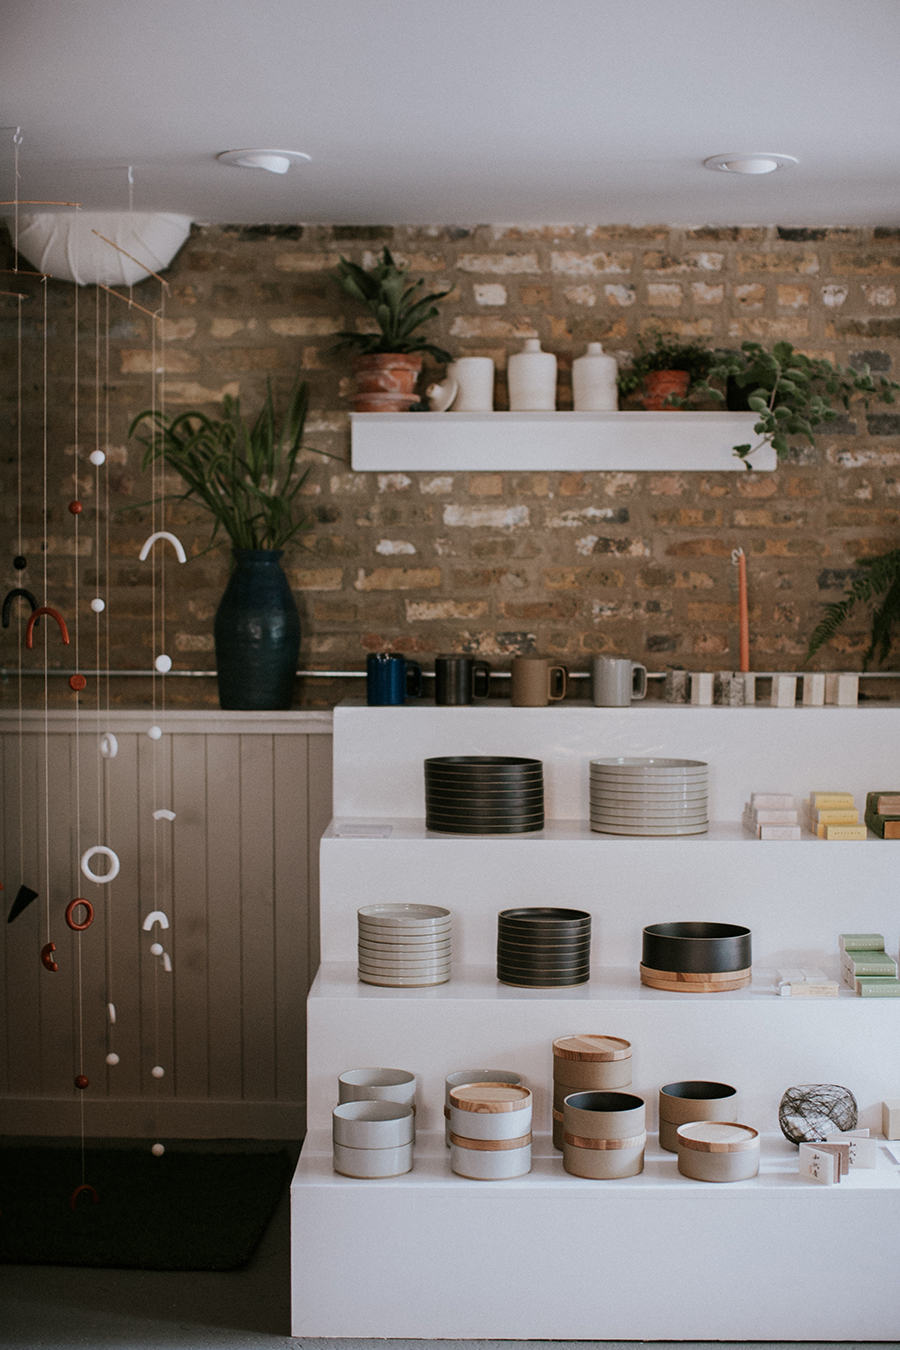 Aside from floral arrangements and a unique selection of home goods and gifts, Field & Florist sells local products.